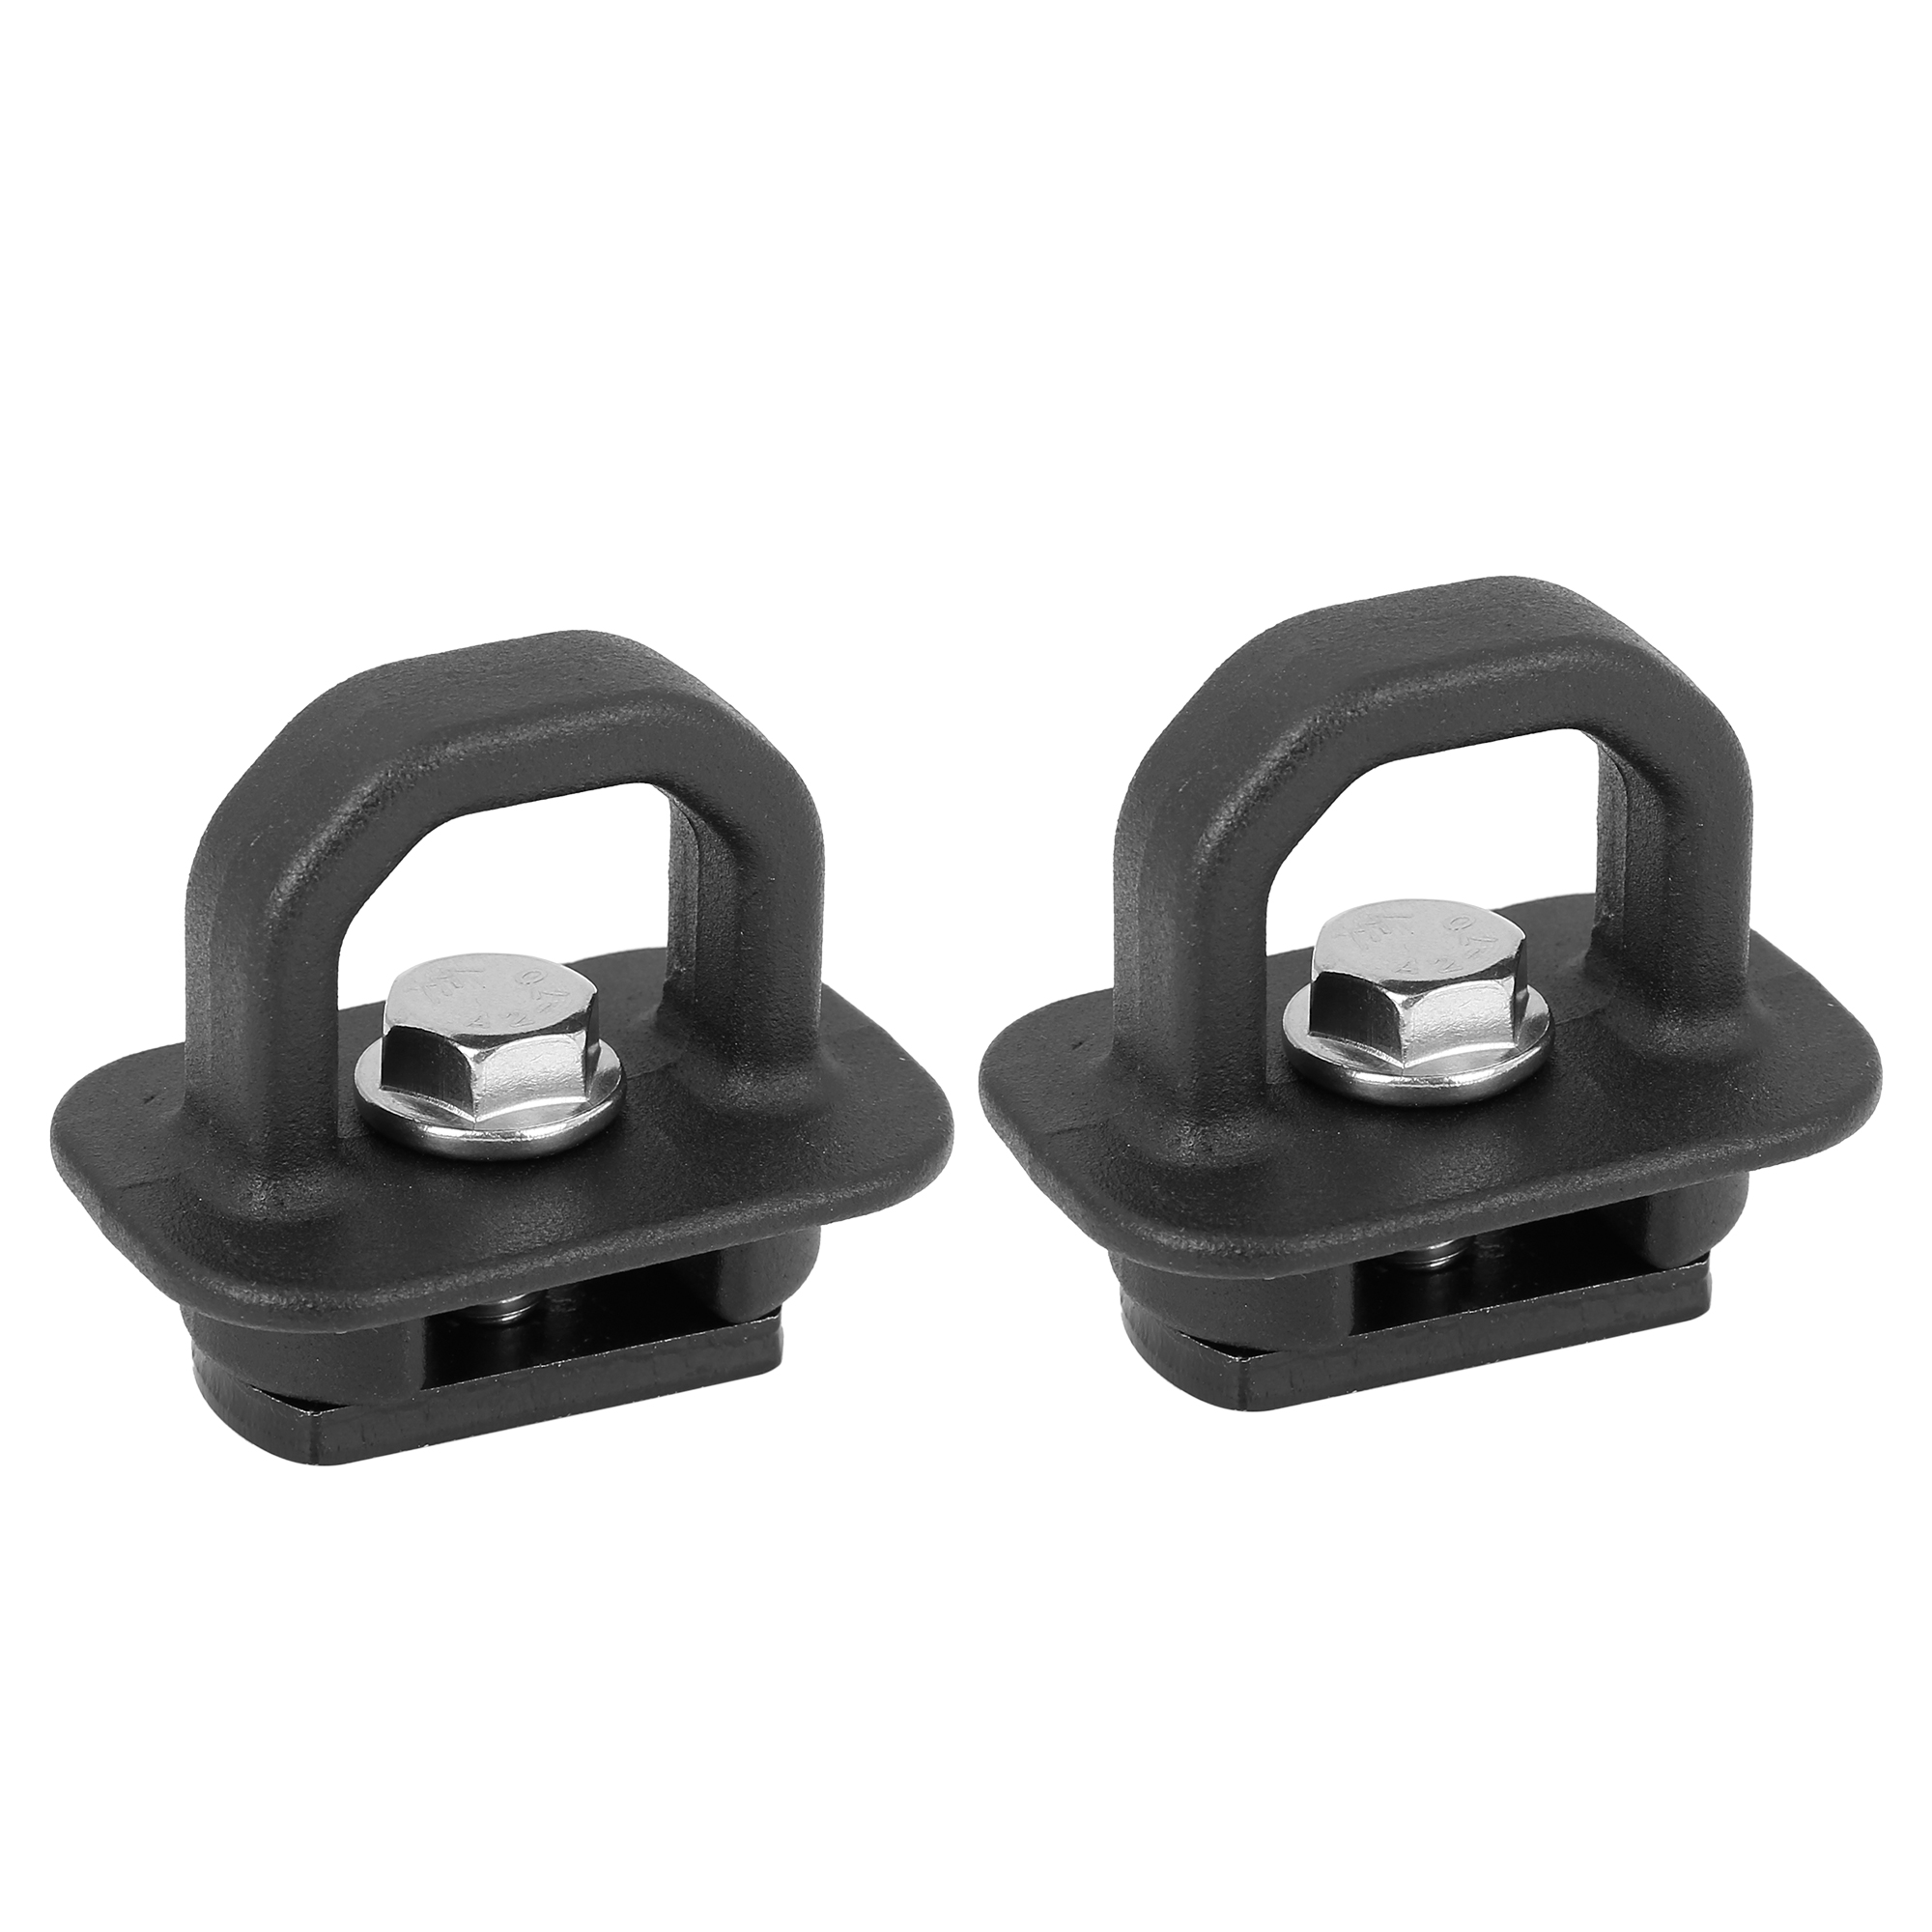 2pcs Black Side Wall Tie Down Anchor for GMC Sierra and for Chevy Colorado